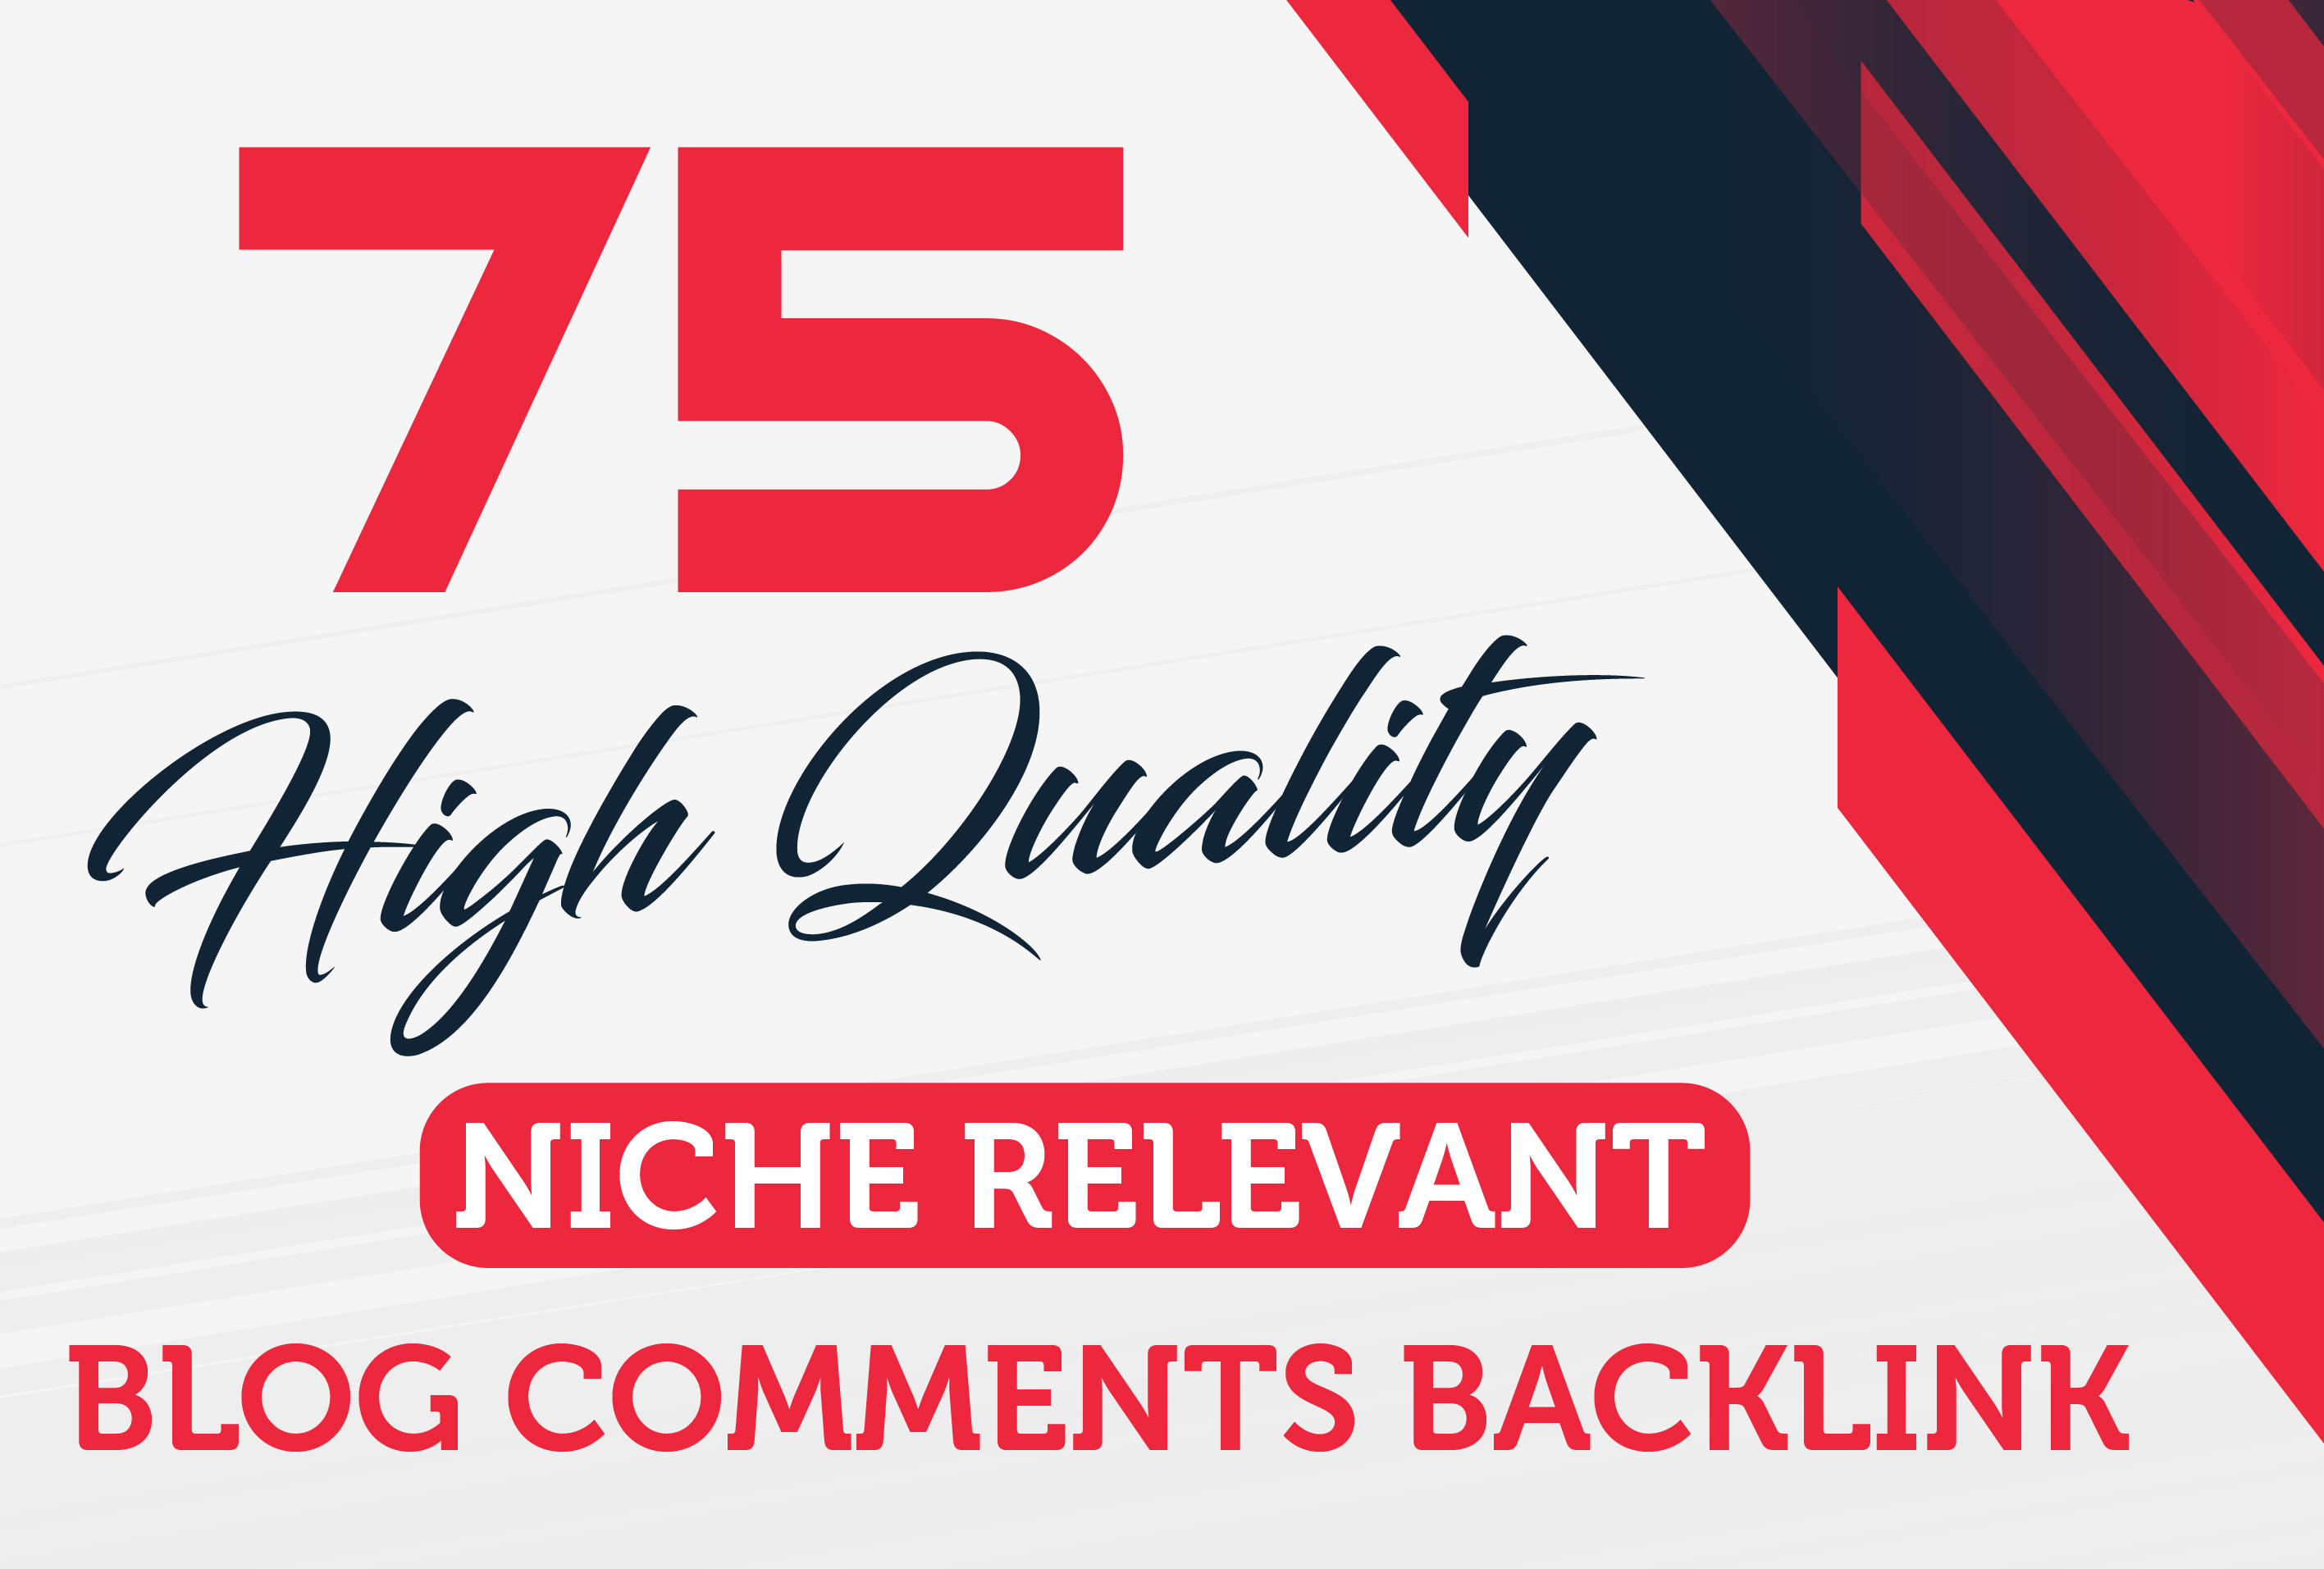 I will make 75 high quality niche relevant blog comments backlinks